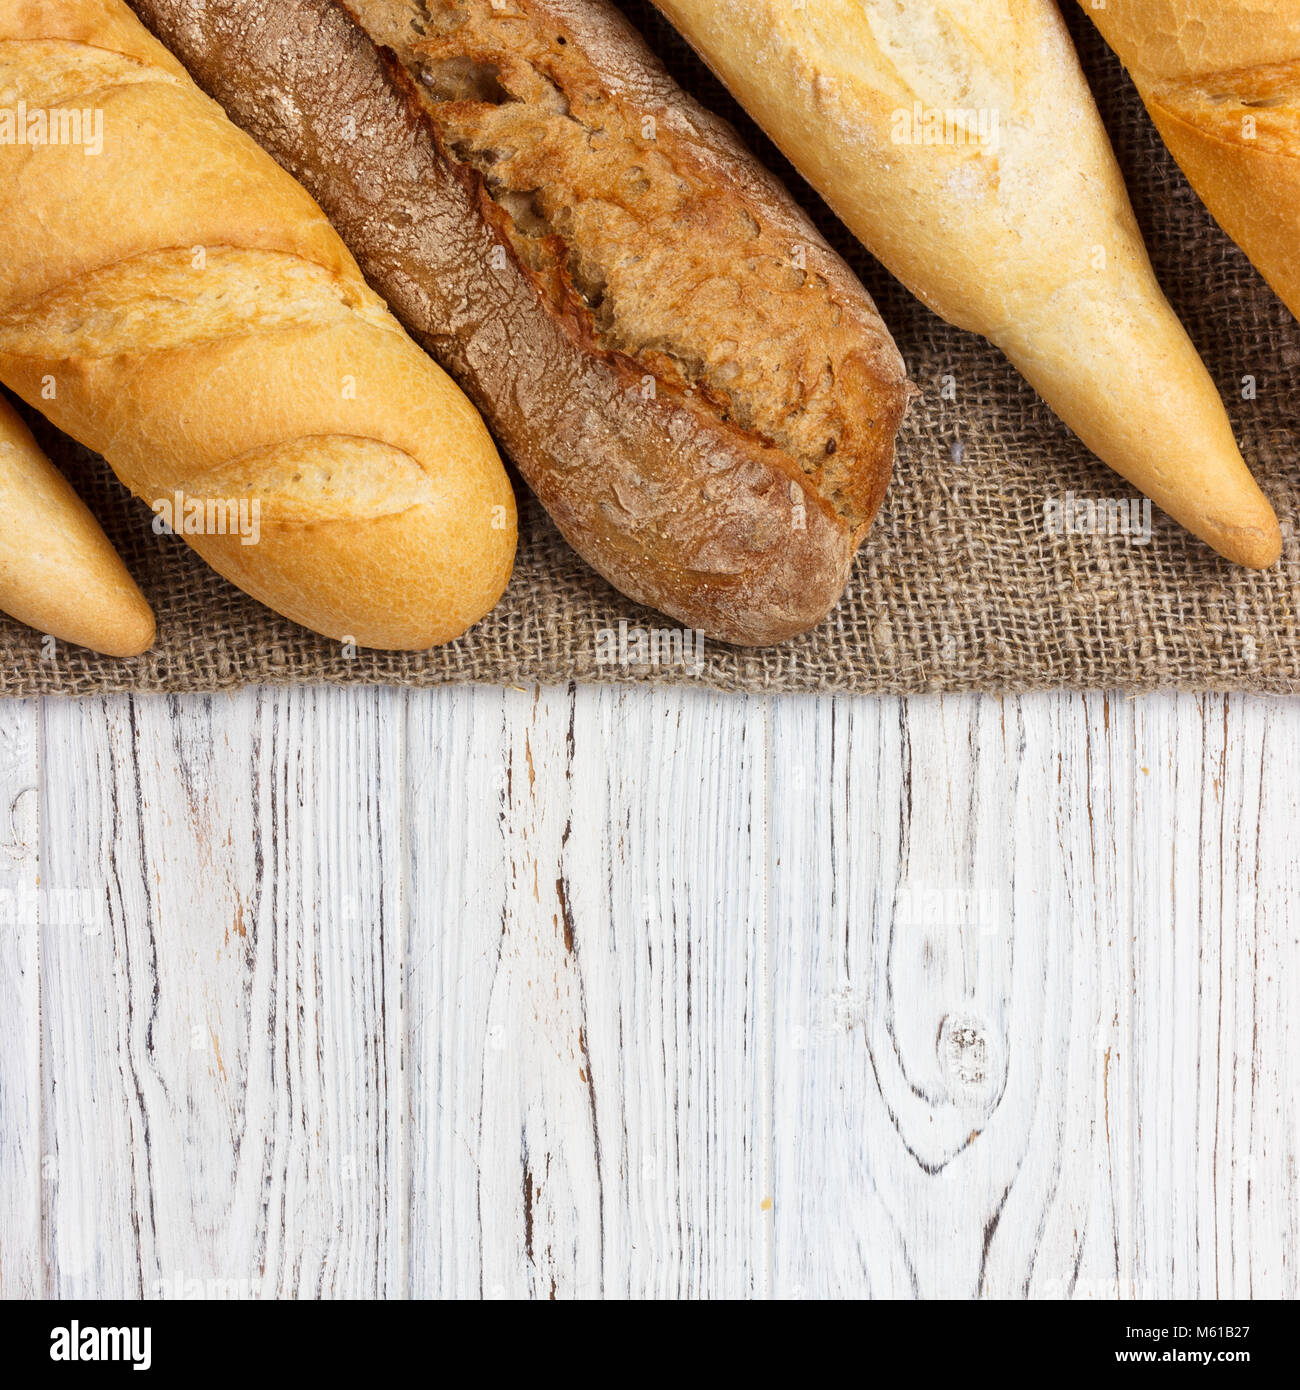 Homemade baguettes on wooden table. close up. - Stock Image